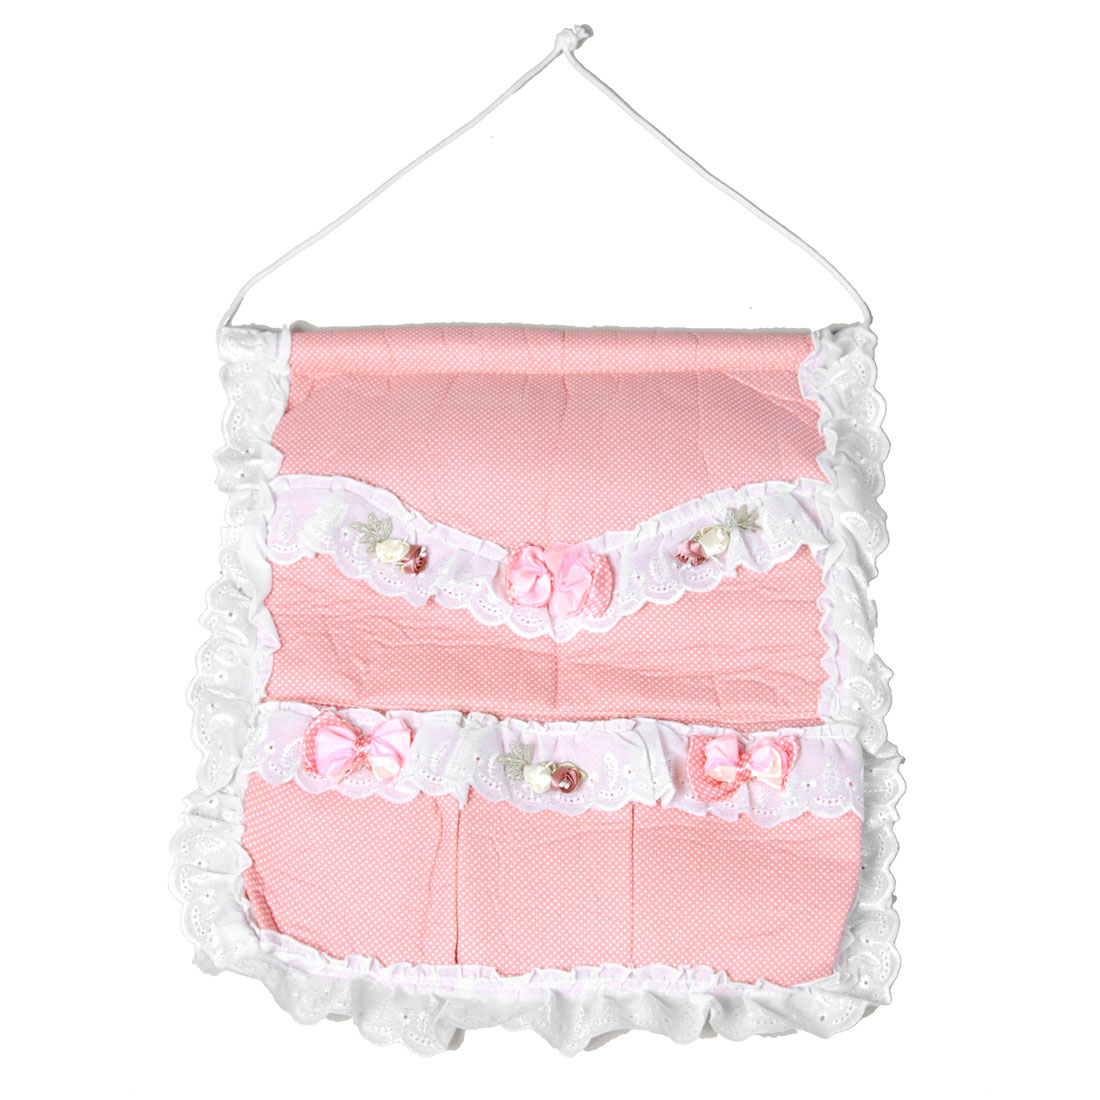 Bow Floral Decor Sponge Soft 5 Pockets Organizer Hanging Storage Bag Pink